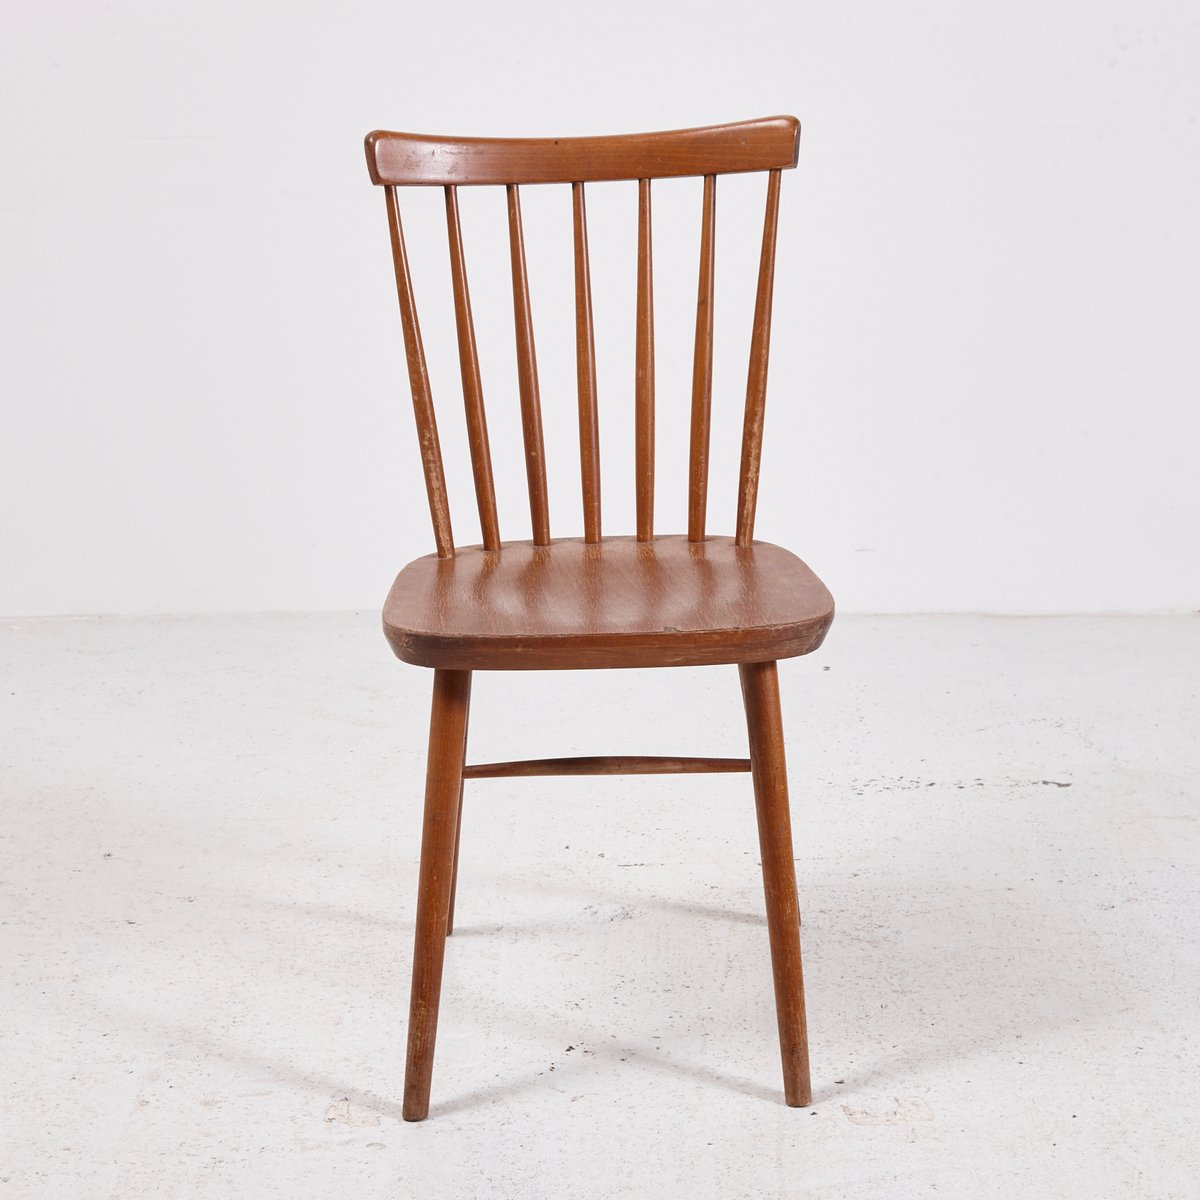 Superbe Vintage Wooden Chair, 1970s